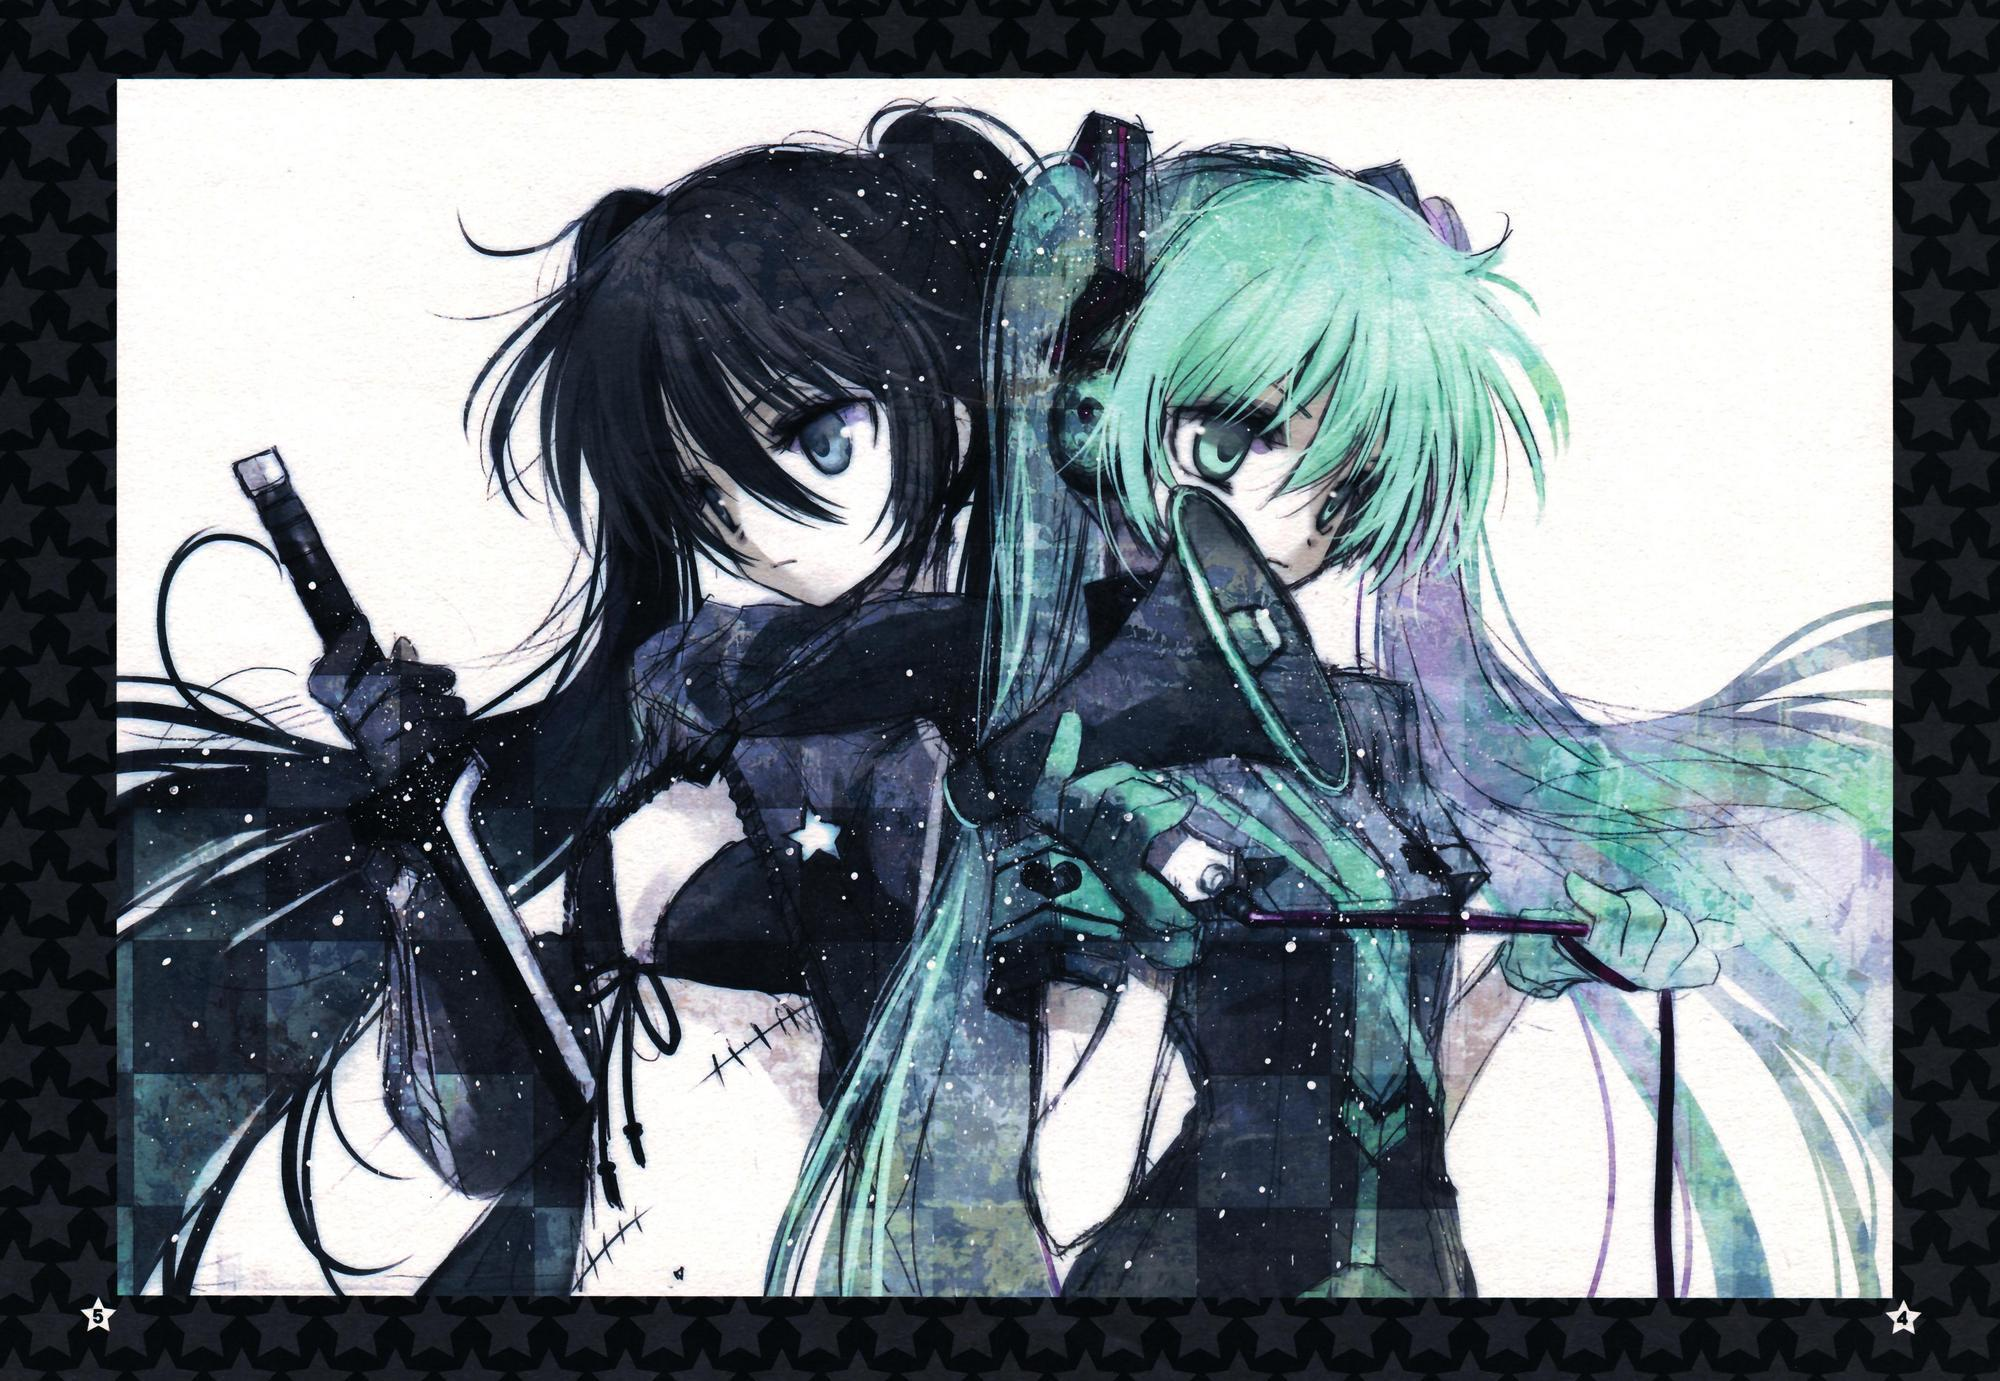 Anime - Black Rock Shooter  - Miku Hatsune - Hatsune Miku Wallpaper